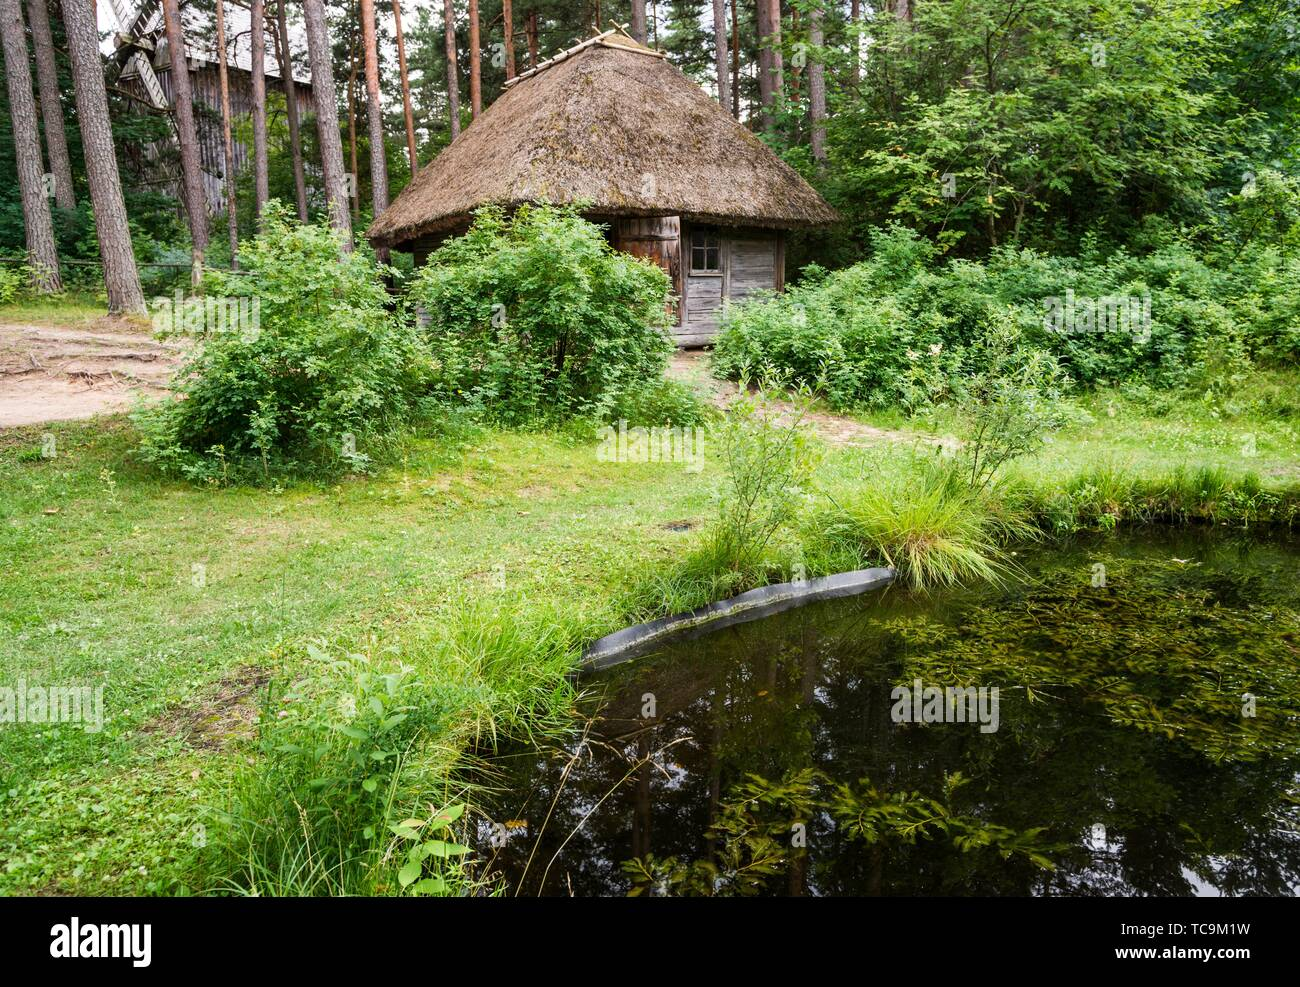 Traditional architecture of the provinces. Latvian Ethnographic Open-Air Museum. Riga, Latvia, Baltic States, Europe. - Stock Image